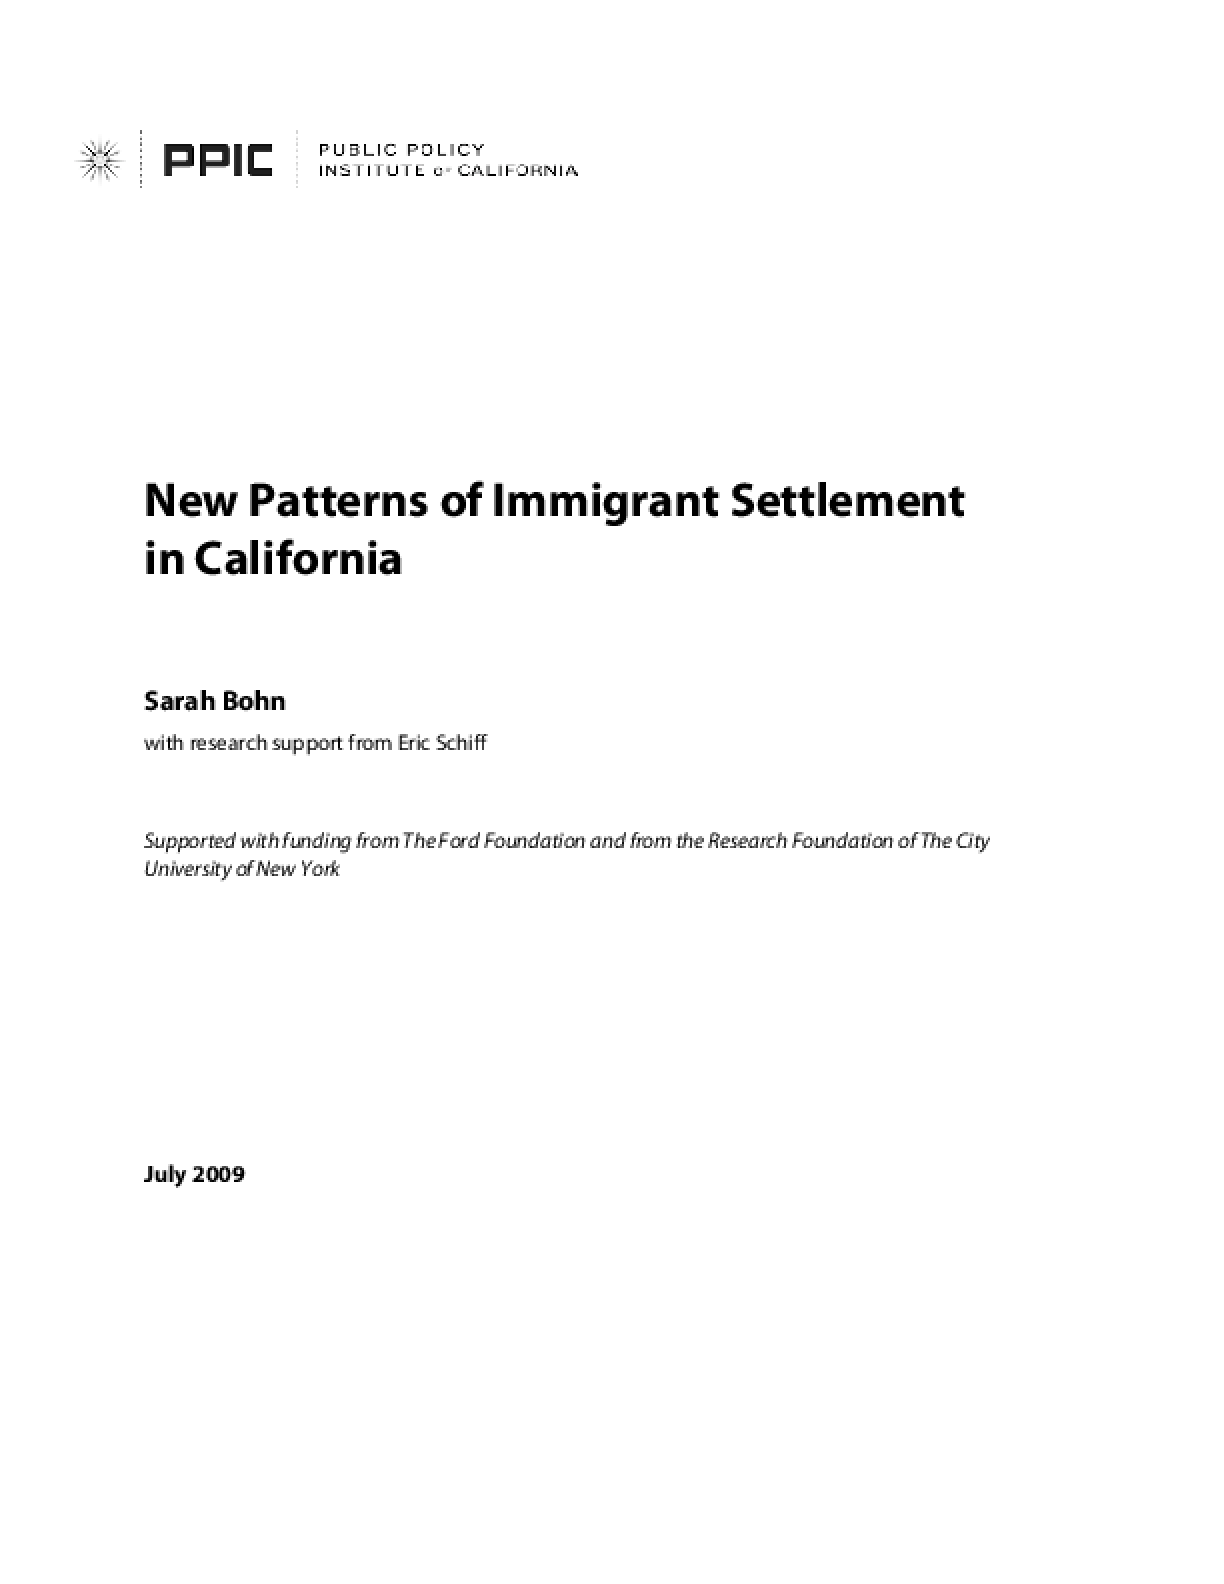 New Patterns of Immigrant Settlement in California